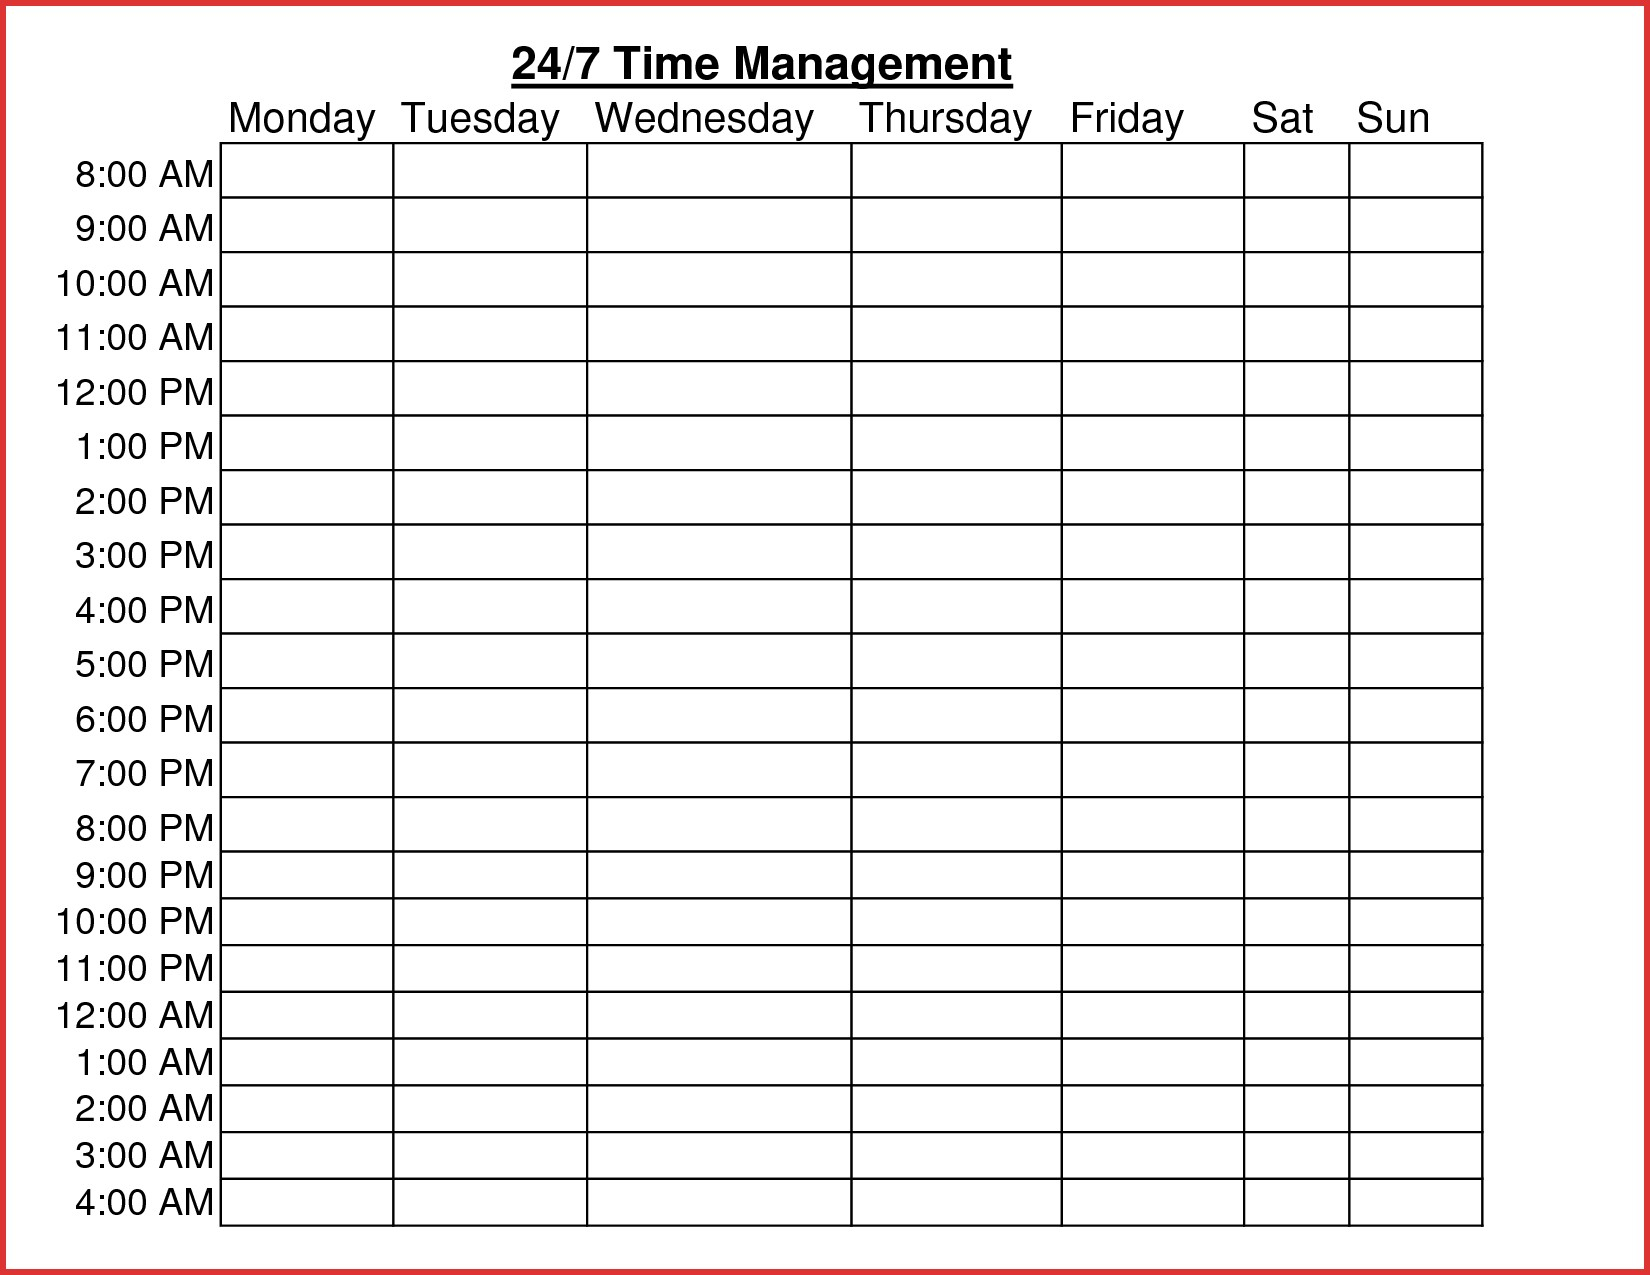 Time Management Worksheet Word Document Inspirationa Hourly Chart To Time Management Charts Templates